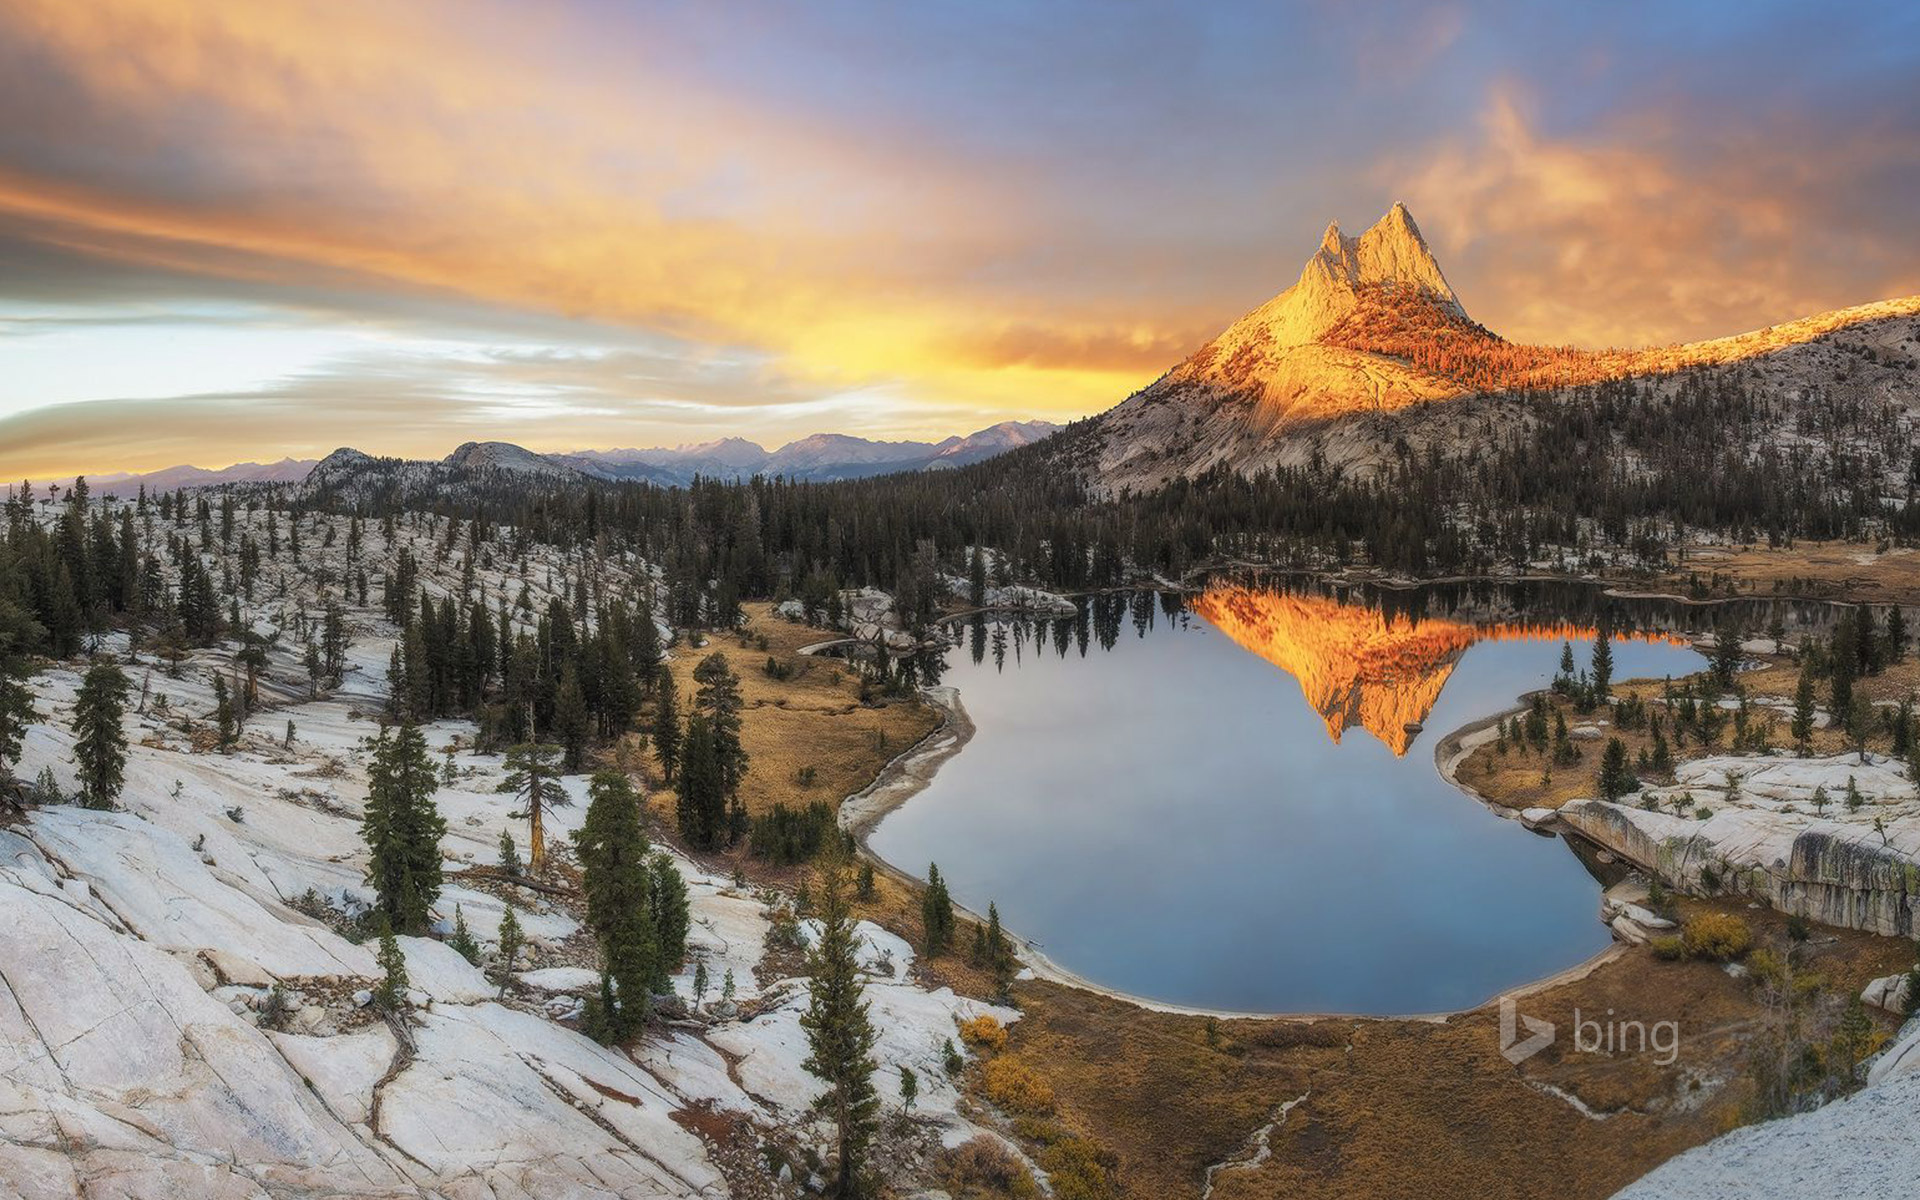 Cathedral Peak, Yosemite National Park, California